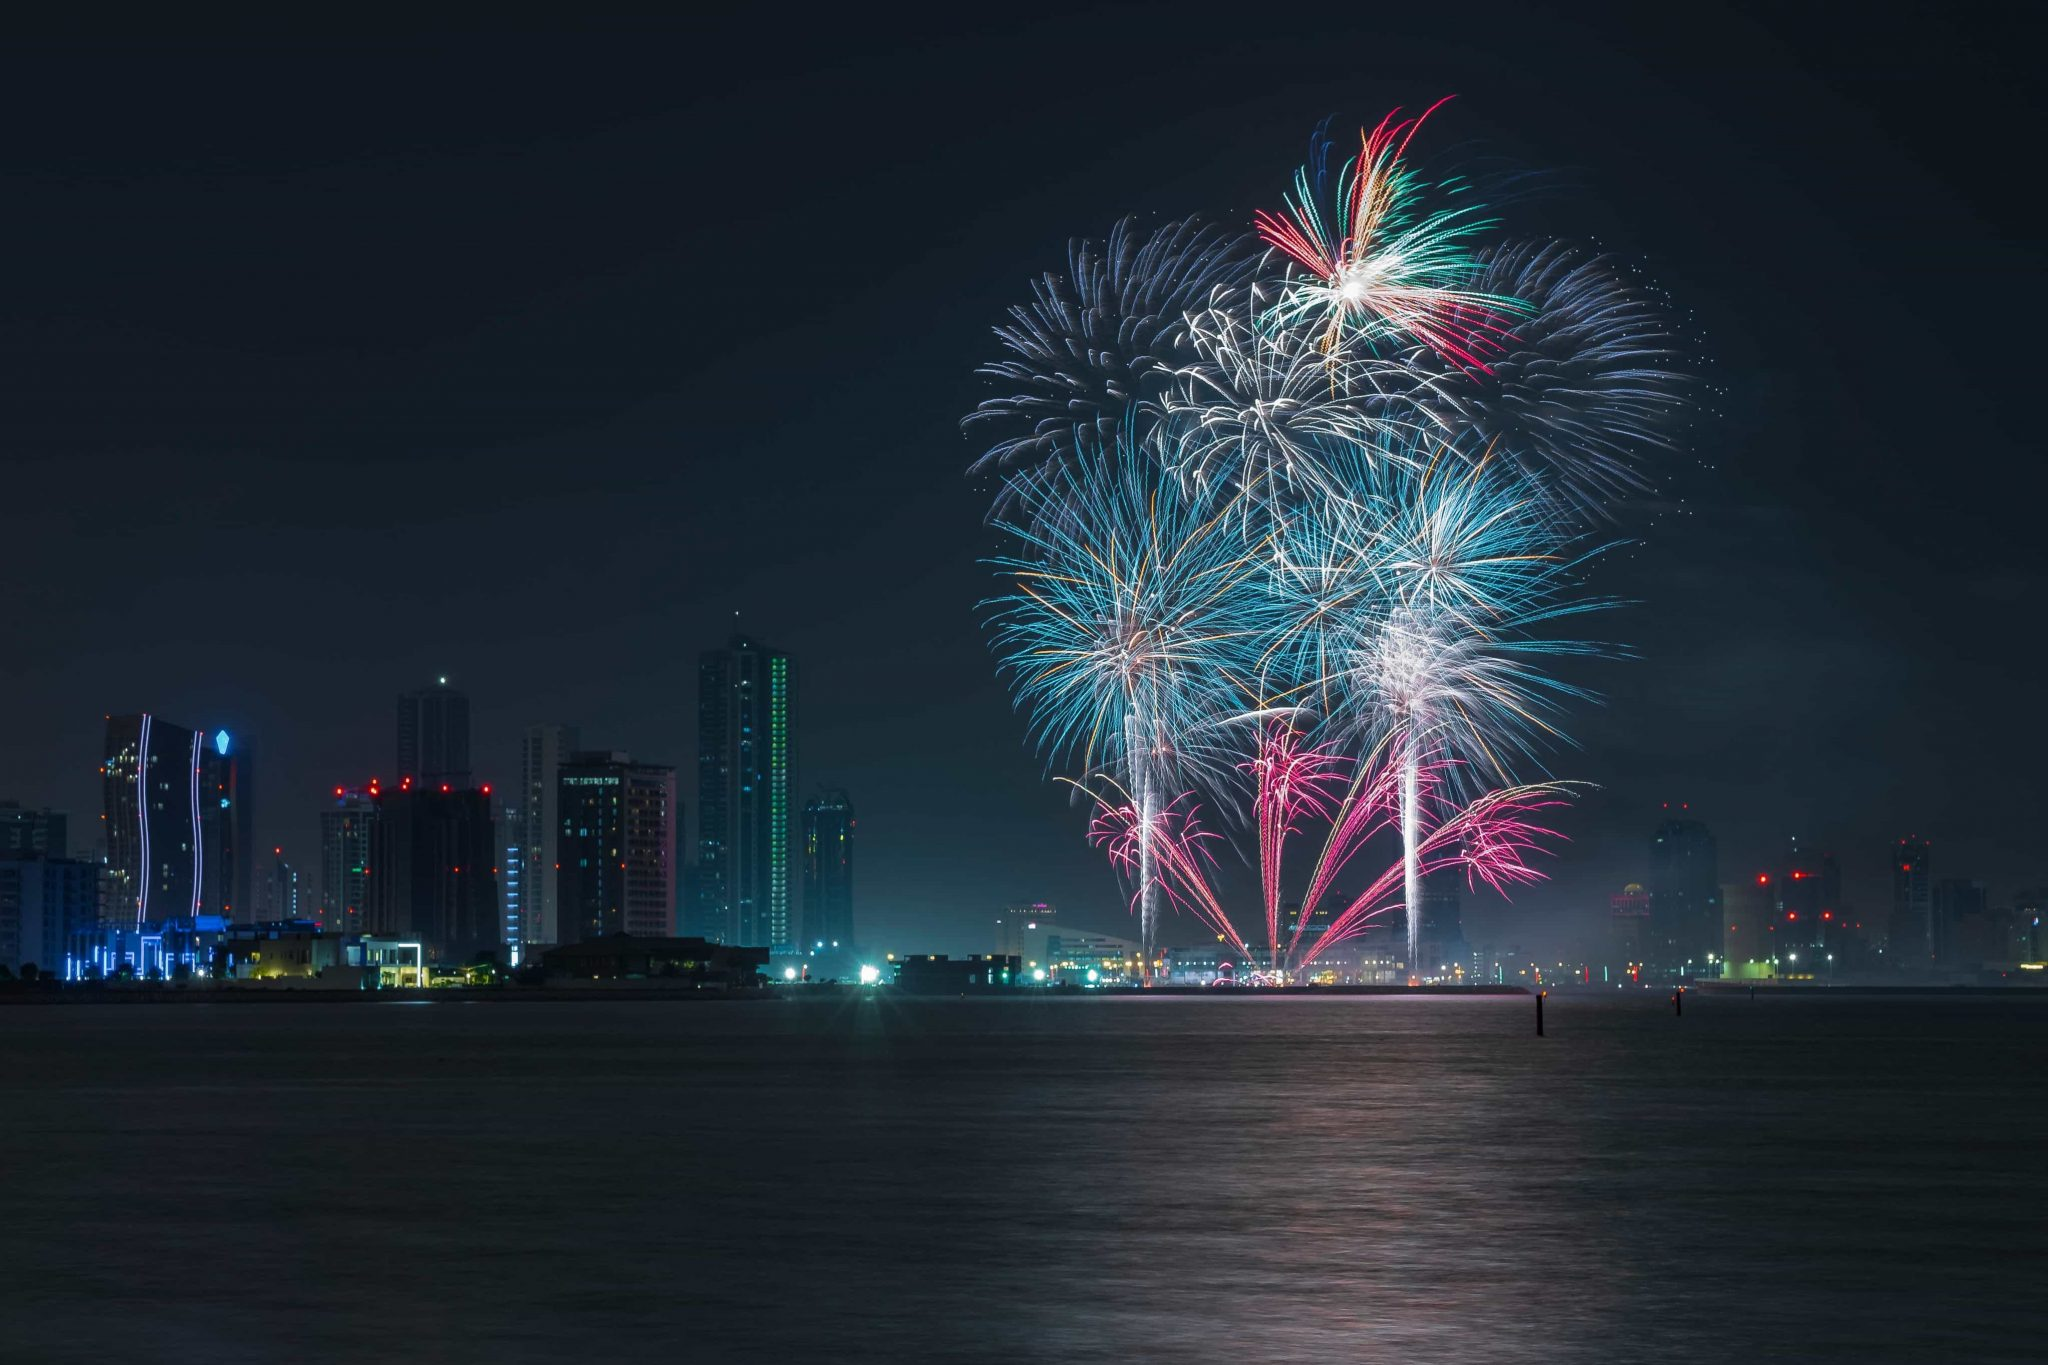 Before looking forward, let's take a last look at all Bahrain has accomplished in 2019